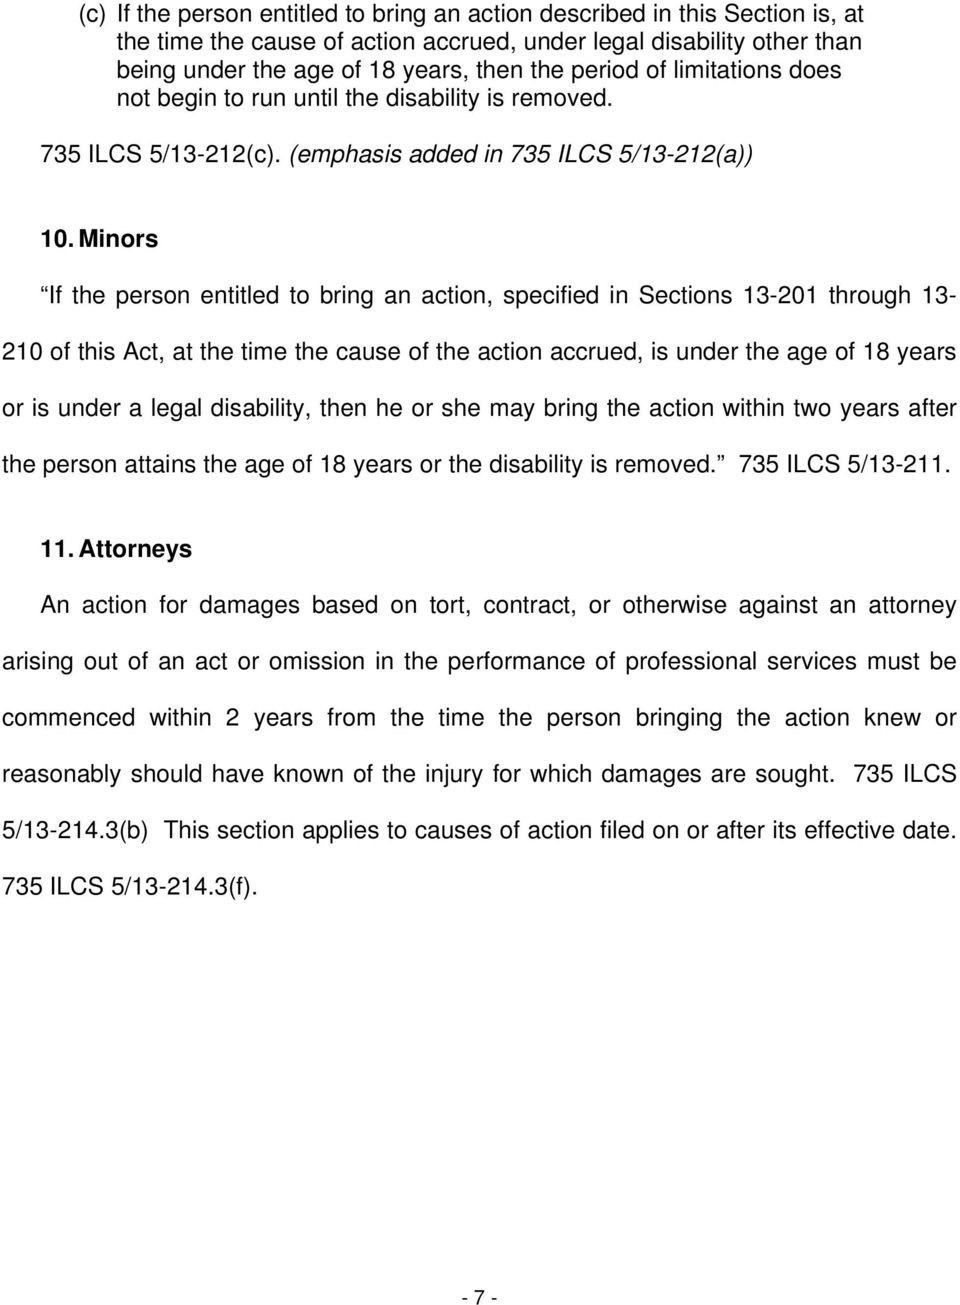 Minors If the person entitled to bring an action, specified in Sections 13-201 through 13-210 of this Act, at the time the cause of the action accrued, is under the age of 18 years or is under a